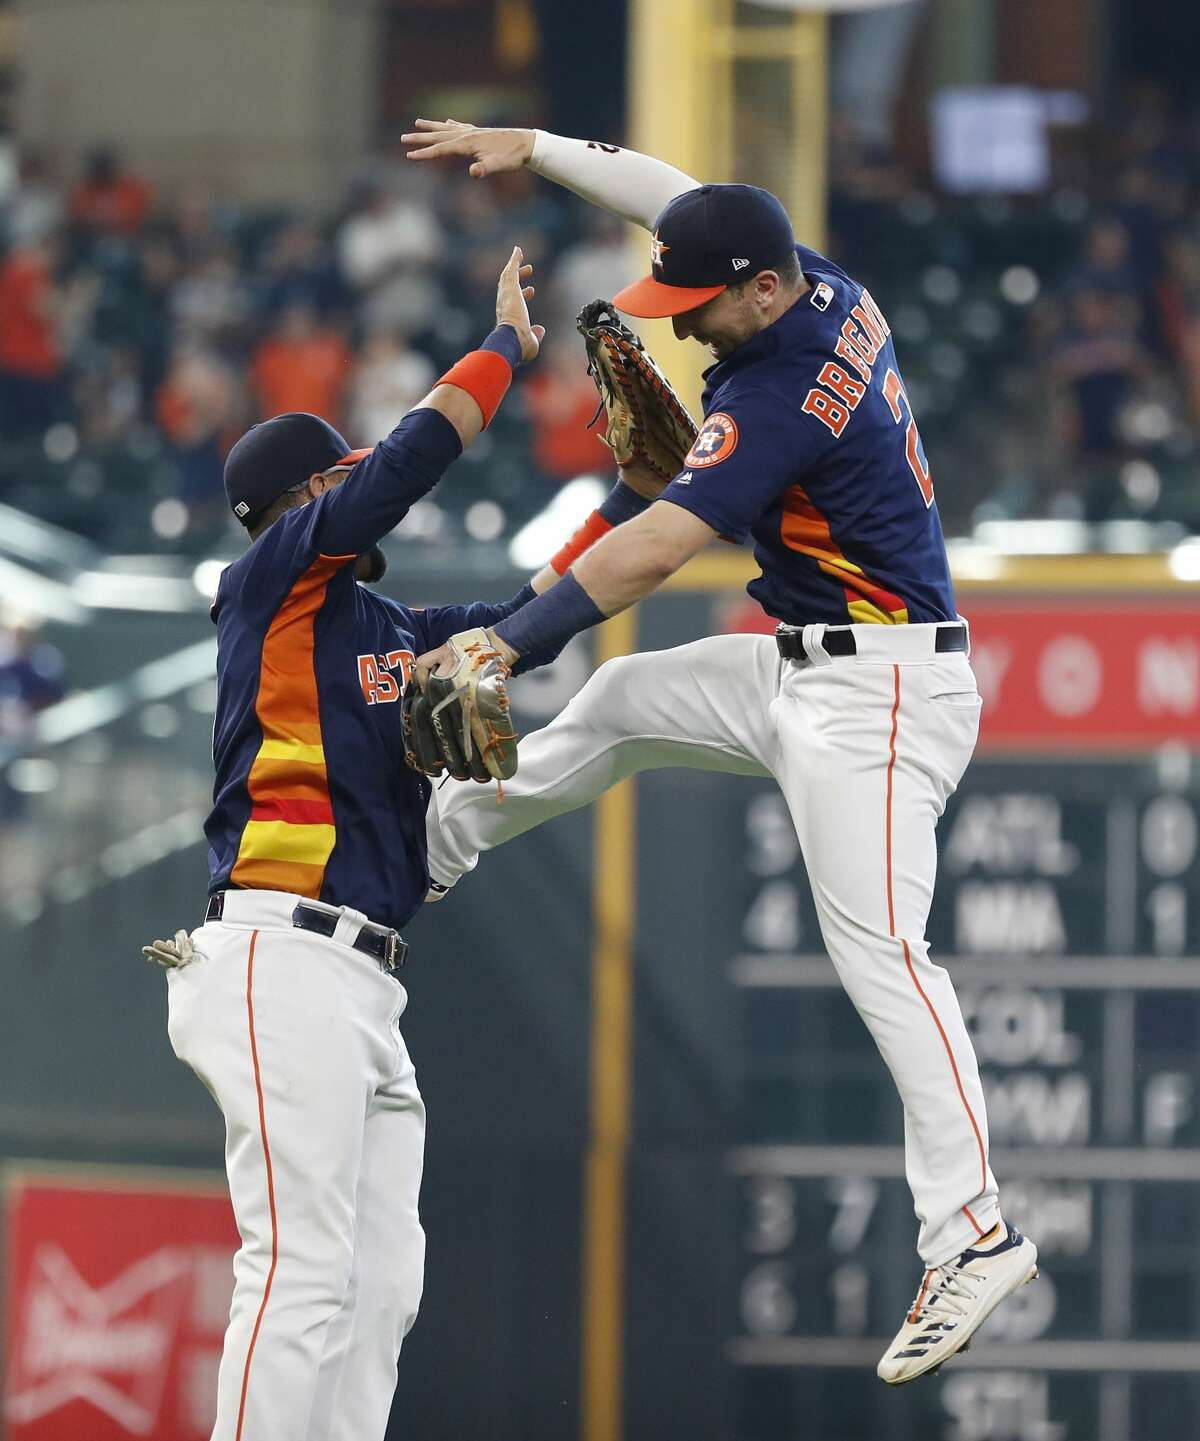 Houston Astros third baseman Alex Bregman (2) and Yuli Gurriel (10) celebrate the Astros 4-0 win after an MLB game at Minute Maid Park, Sunday, June 9, 2019, in Houston.